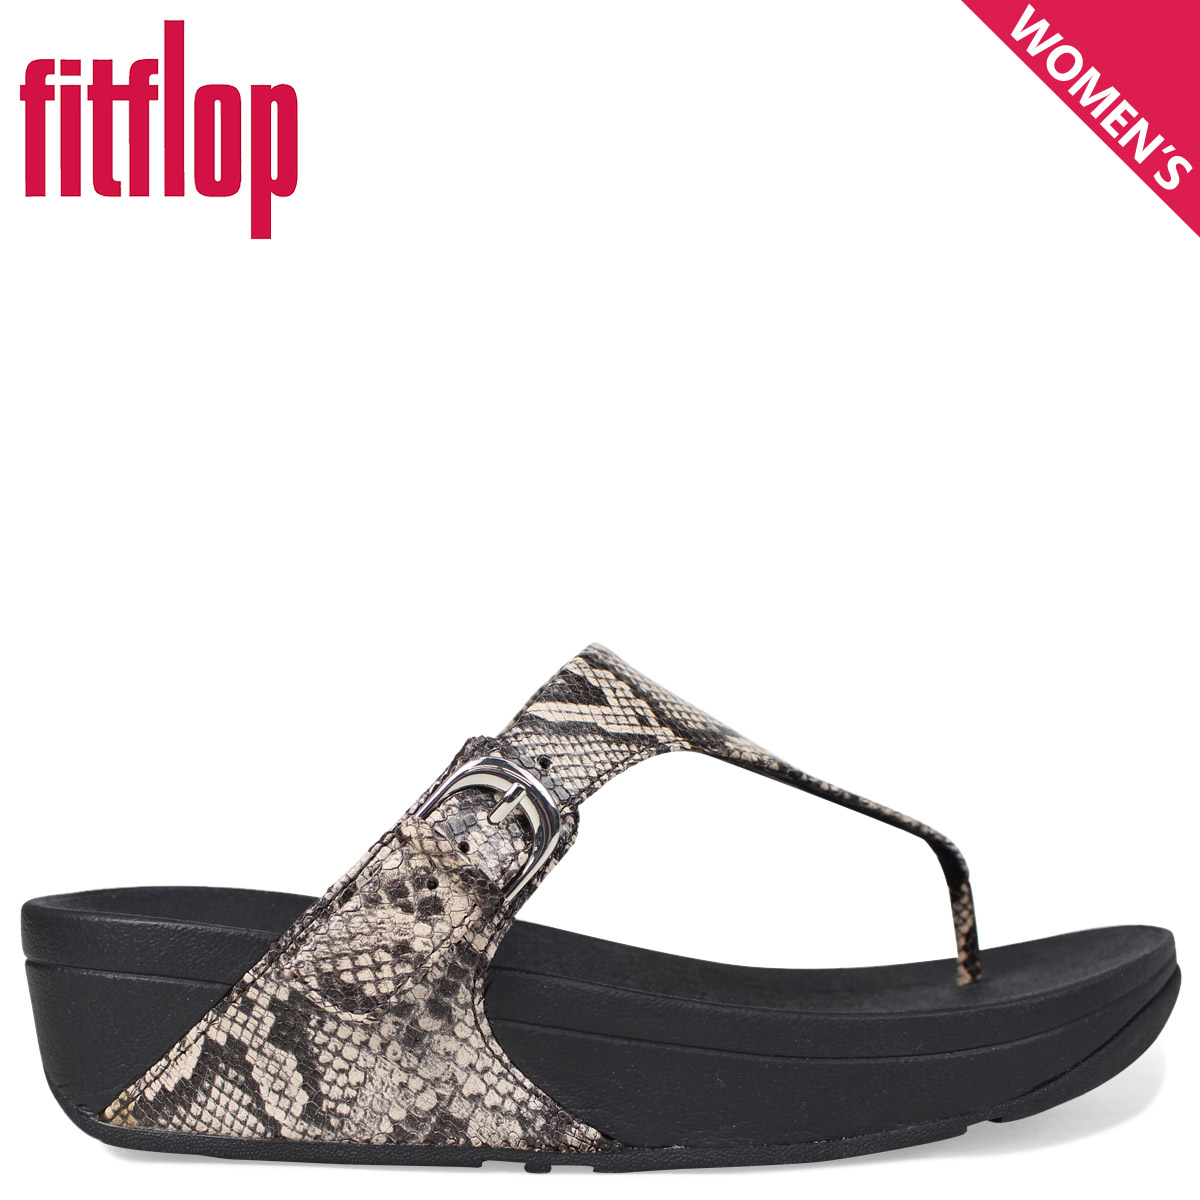 ec4103826e0a Sugar Online Shop  Fitting FLOP sandals FitFlop Kinney SKINNY TOE-THONG  SANDALS SNAKE PRINT LEATHER Lady s L69 black  4 4 Shinnyu load